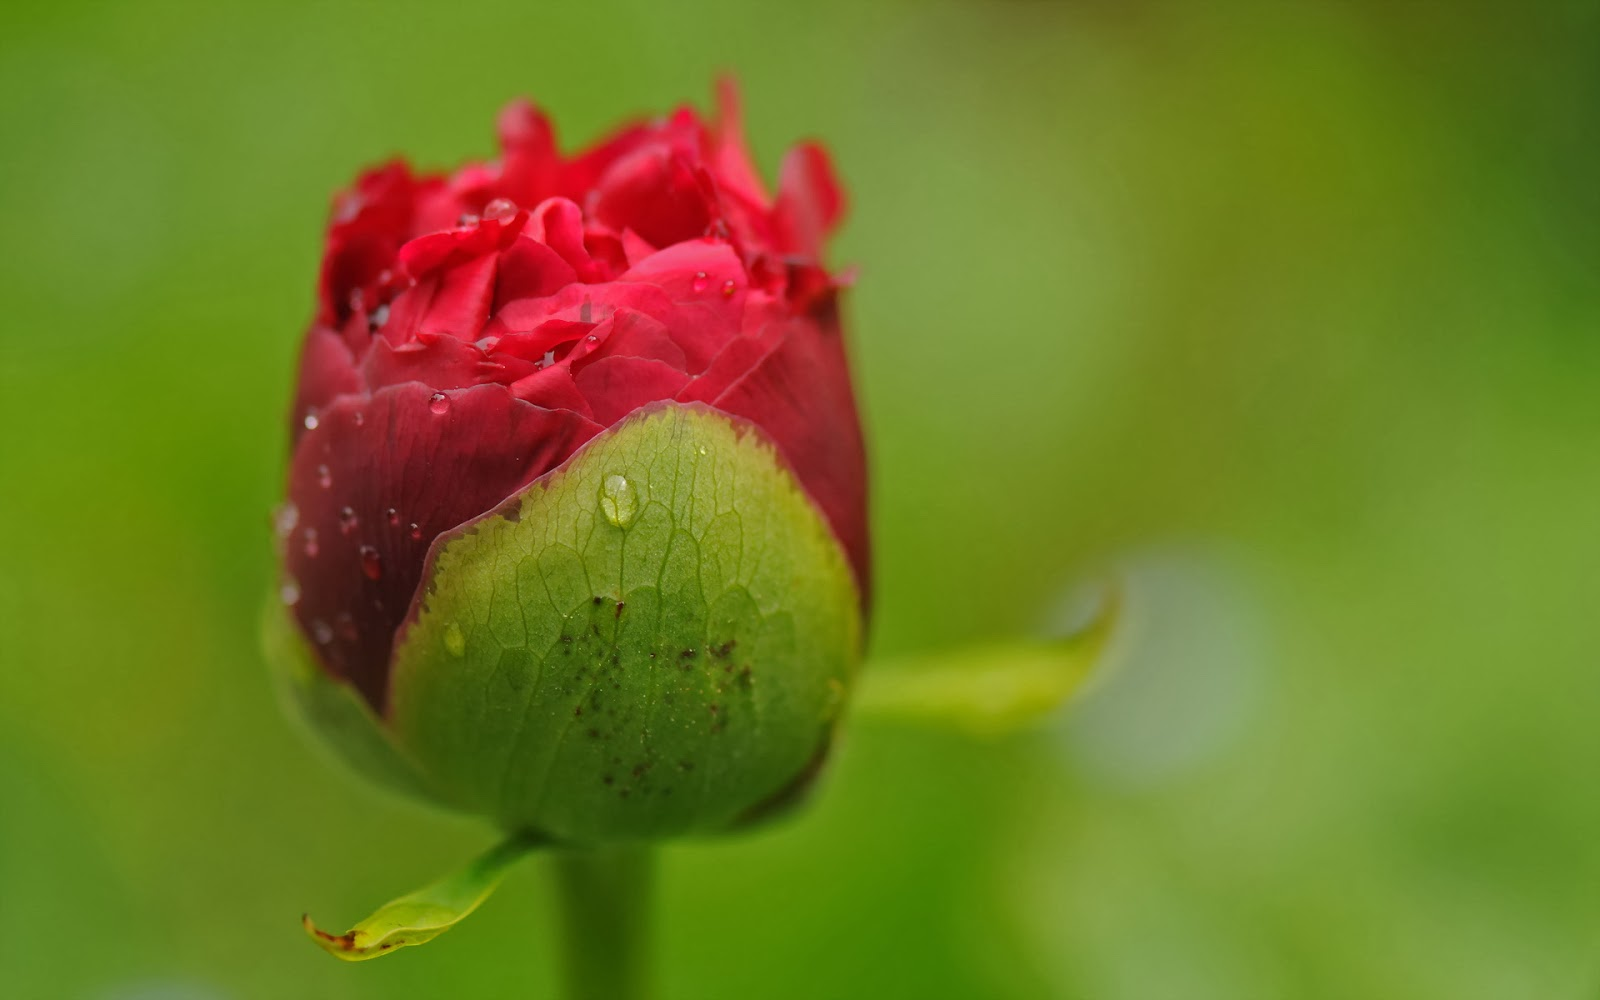 Single-Rose-HD-art-Photography-stock-image-close-up-shot-free-downoad.jpg